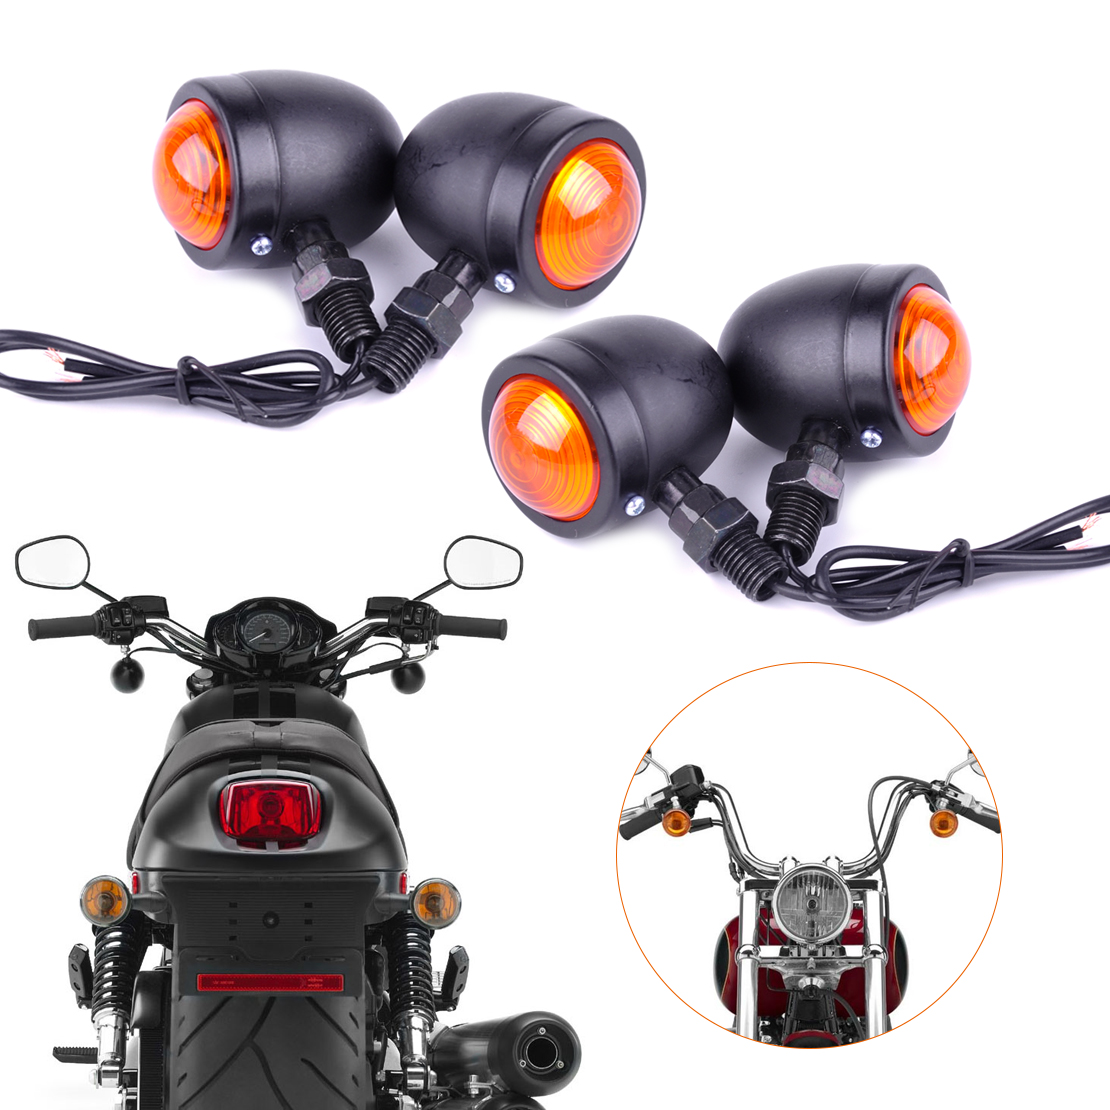 DWCX Motorcycle 4x 12V Bullet Turn სიგნალის ინდიკატორი Lights Lamp fit for Harley Bobber Chopper Yamaha Suzuki Kawasaki Dirt Bike